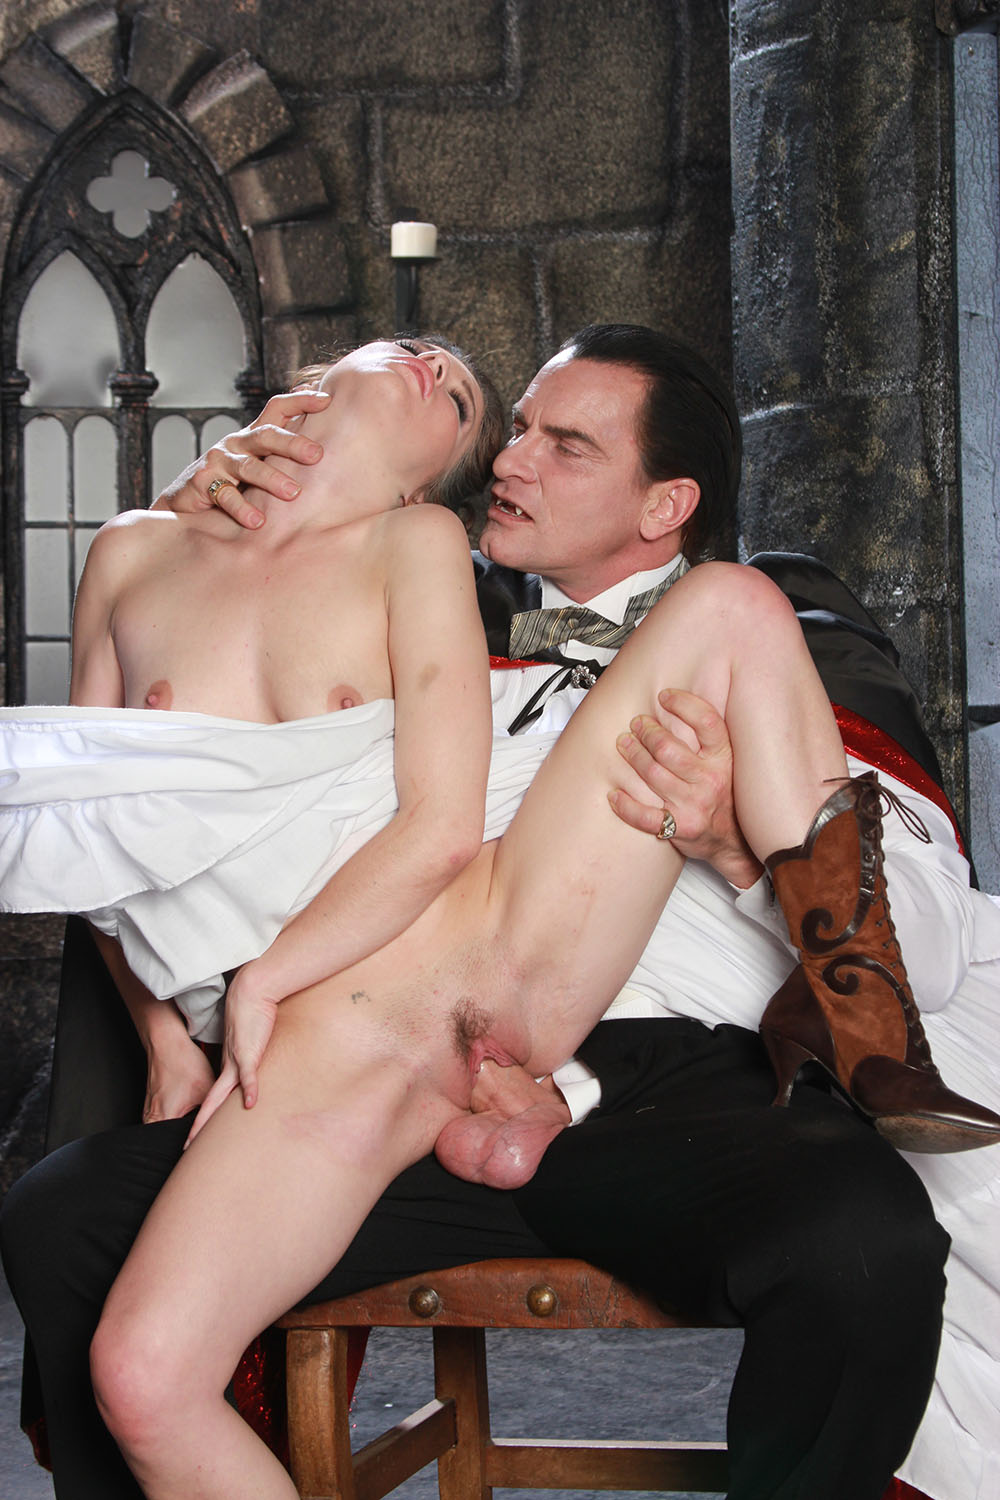 Dracula porn movie in hq 3gp adult movies